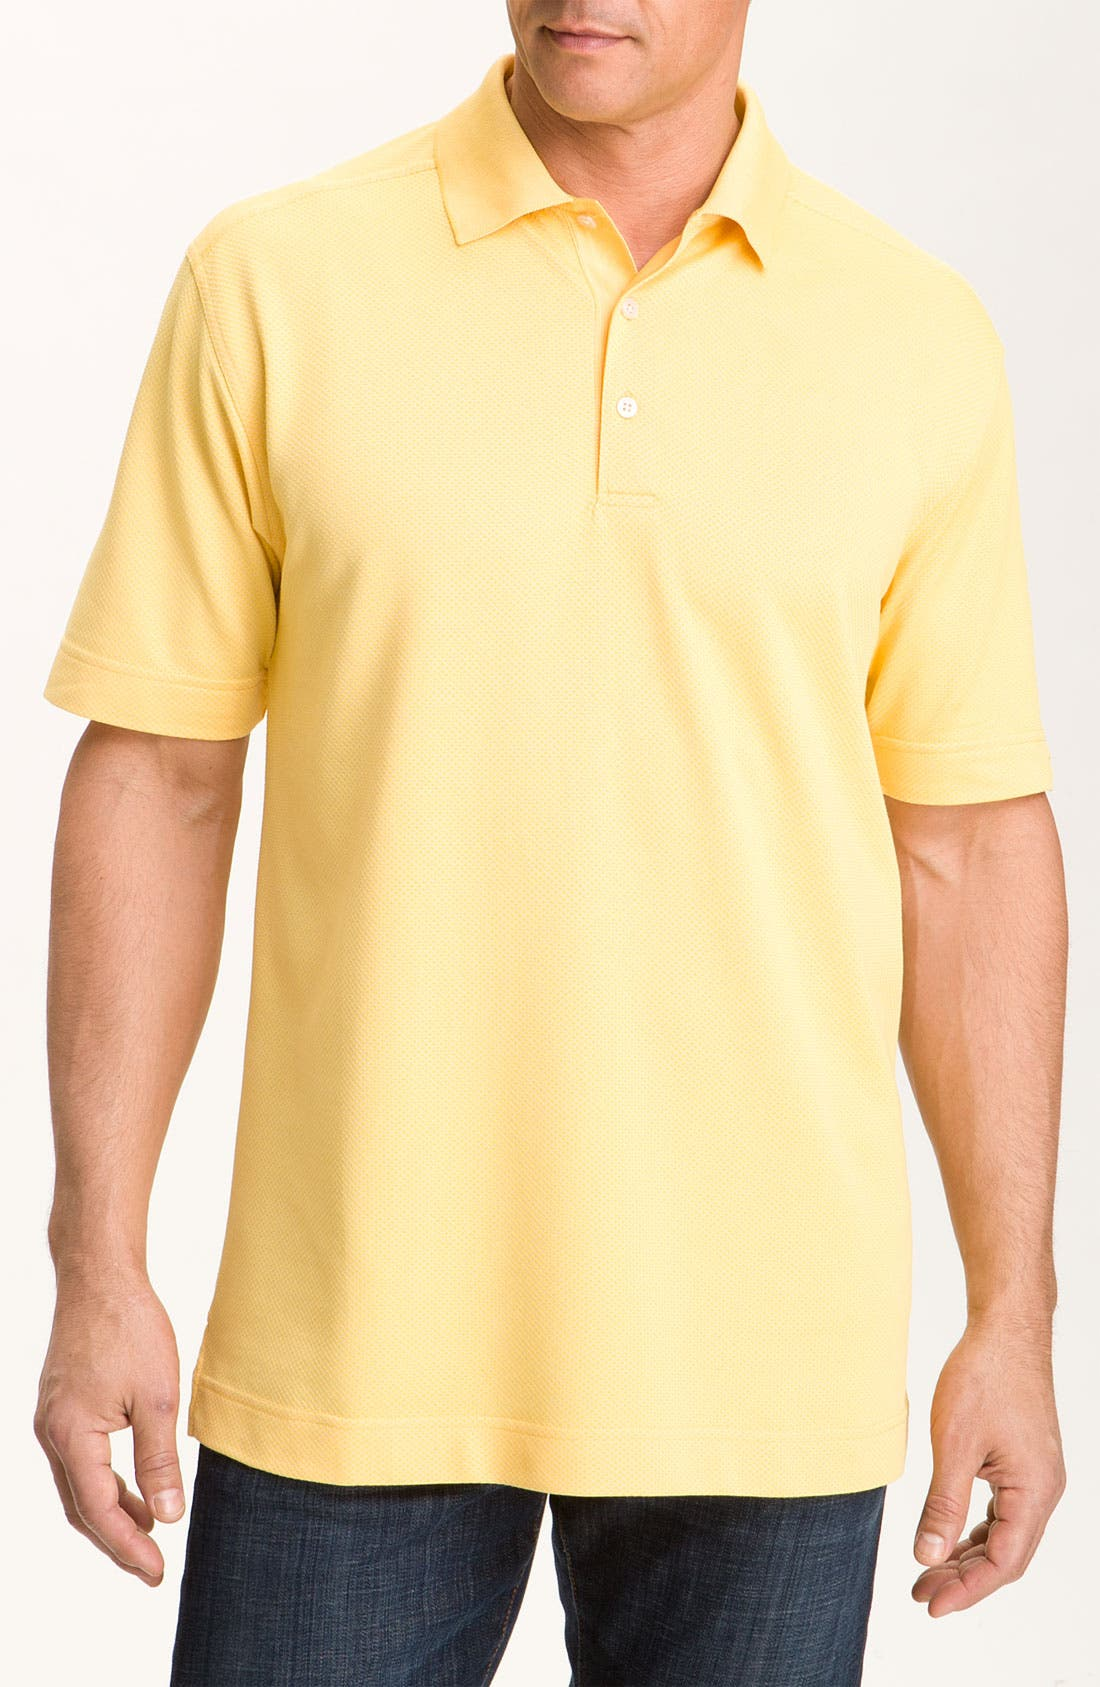 Alternate Image 1 Selected - Cutter & Buck 'Nano' DryTec Golf Polo (Big & Tall)